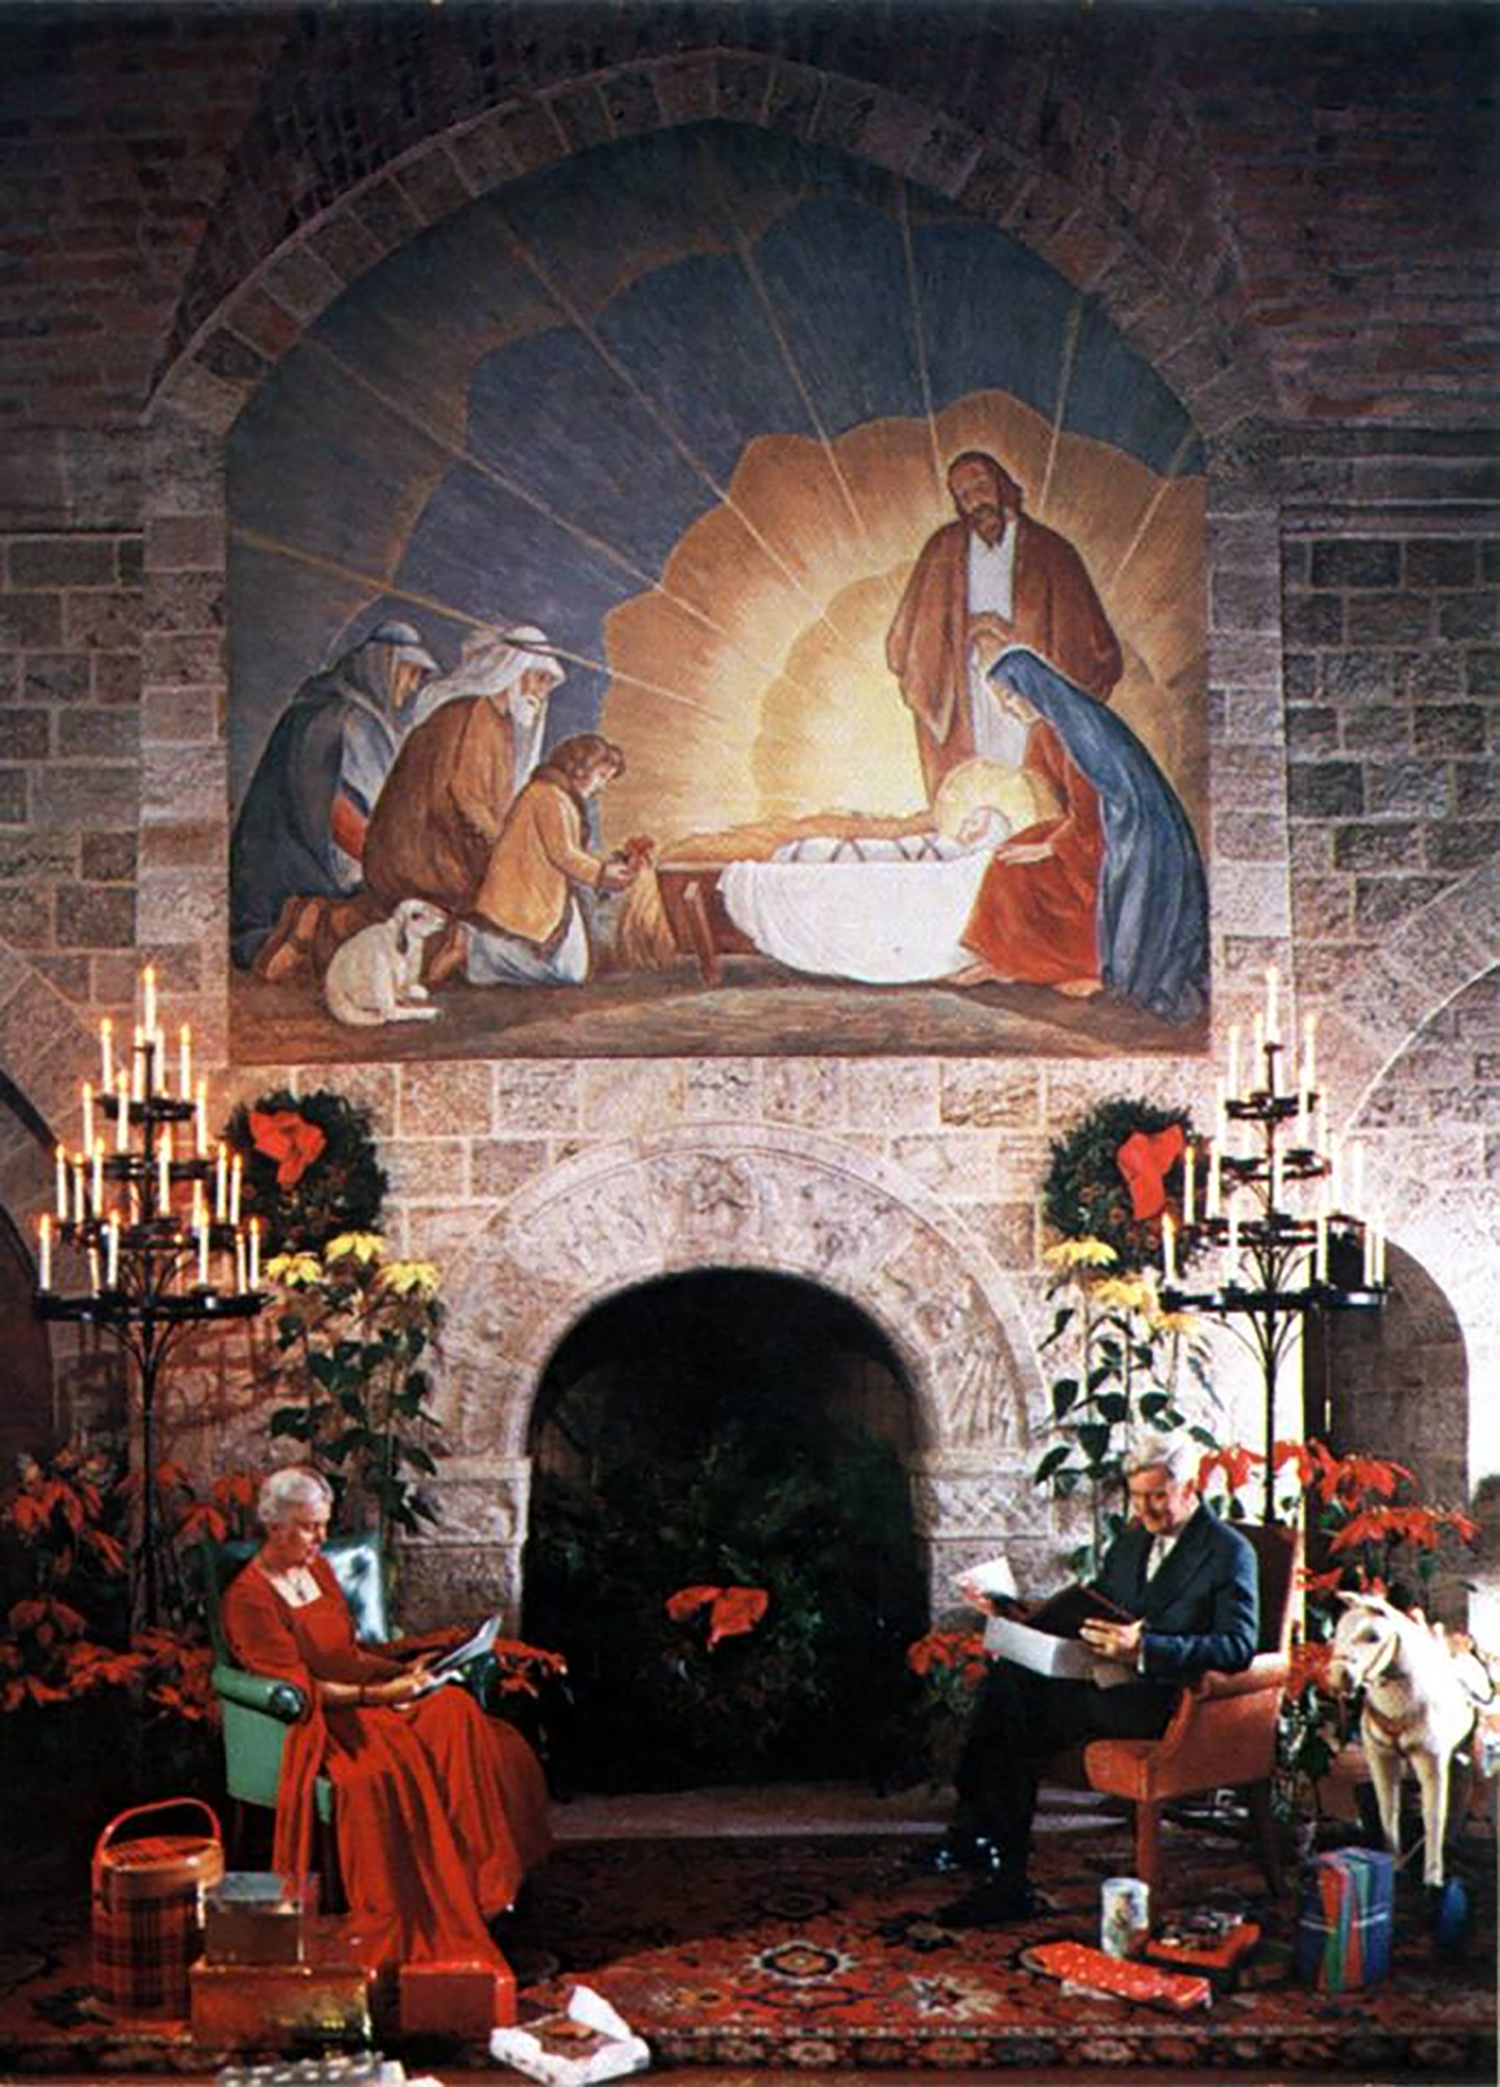 Figure 2: Raymond and Mildred Pitcairn pose for their 1954 Christmas card picture beside the Days of Creation fireplace in Glencairn's Upper Hall. Each year during the holiday season a large painting of shepherds visiting the baby Jesus was hung above the fireplace. The painting was adapted from an illustration in  The Christ Child , a children's book by Maud and Miska Petersham, who gave permission for this large-scale adaptation of their work.